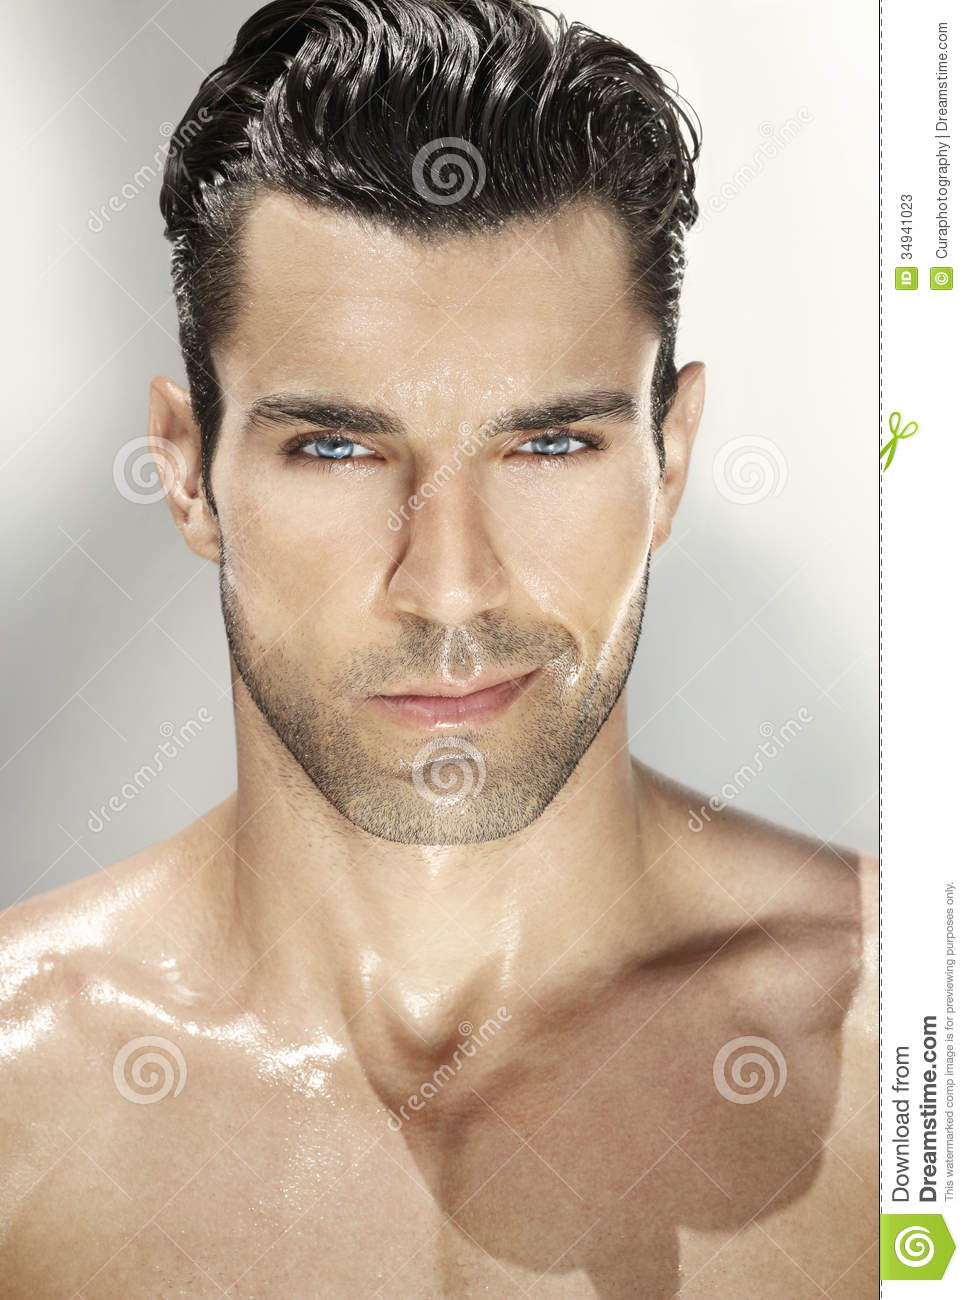 Portrait Of Good-looking Man Stock Image - Image of cute ...